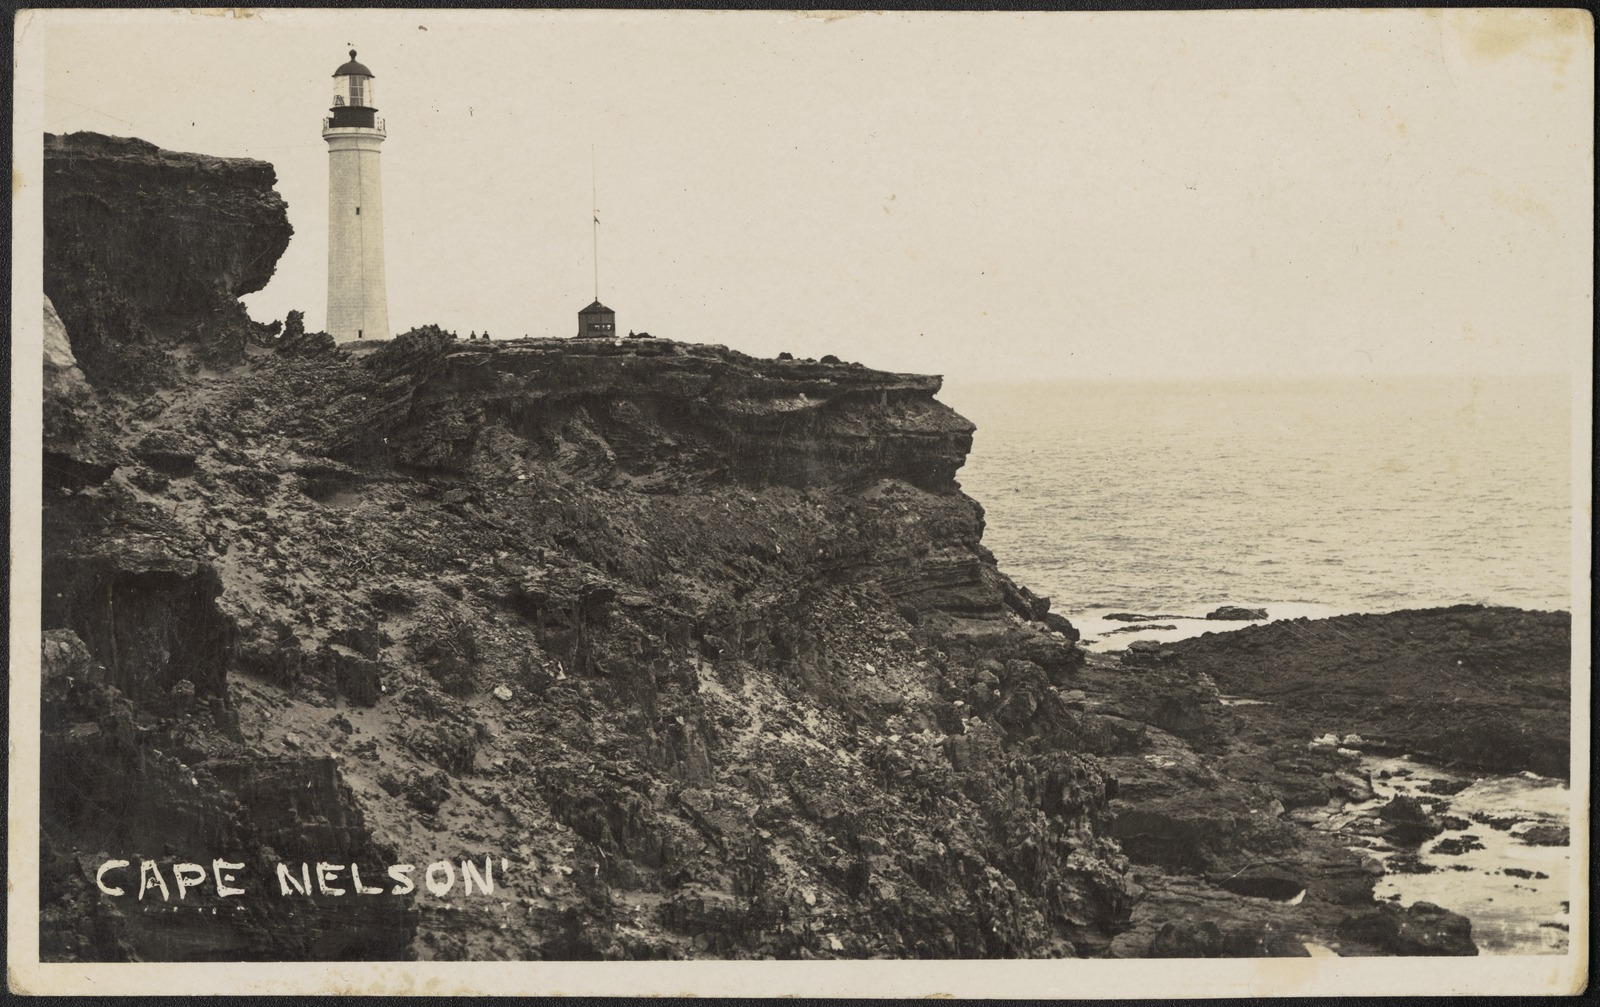 Cape Nelson about 1910